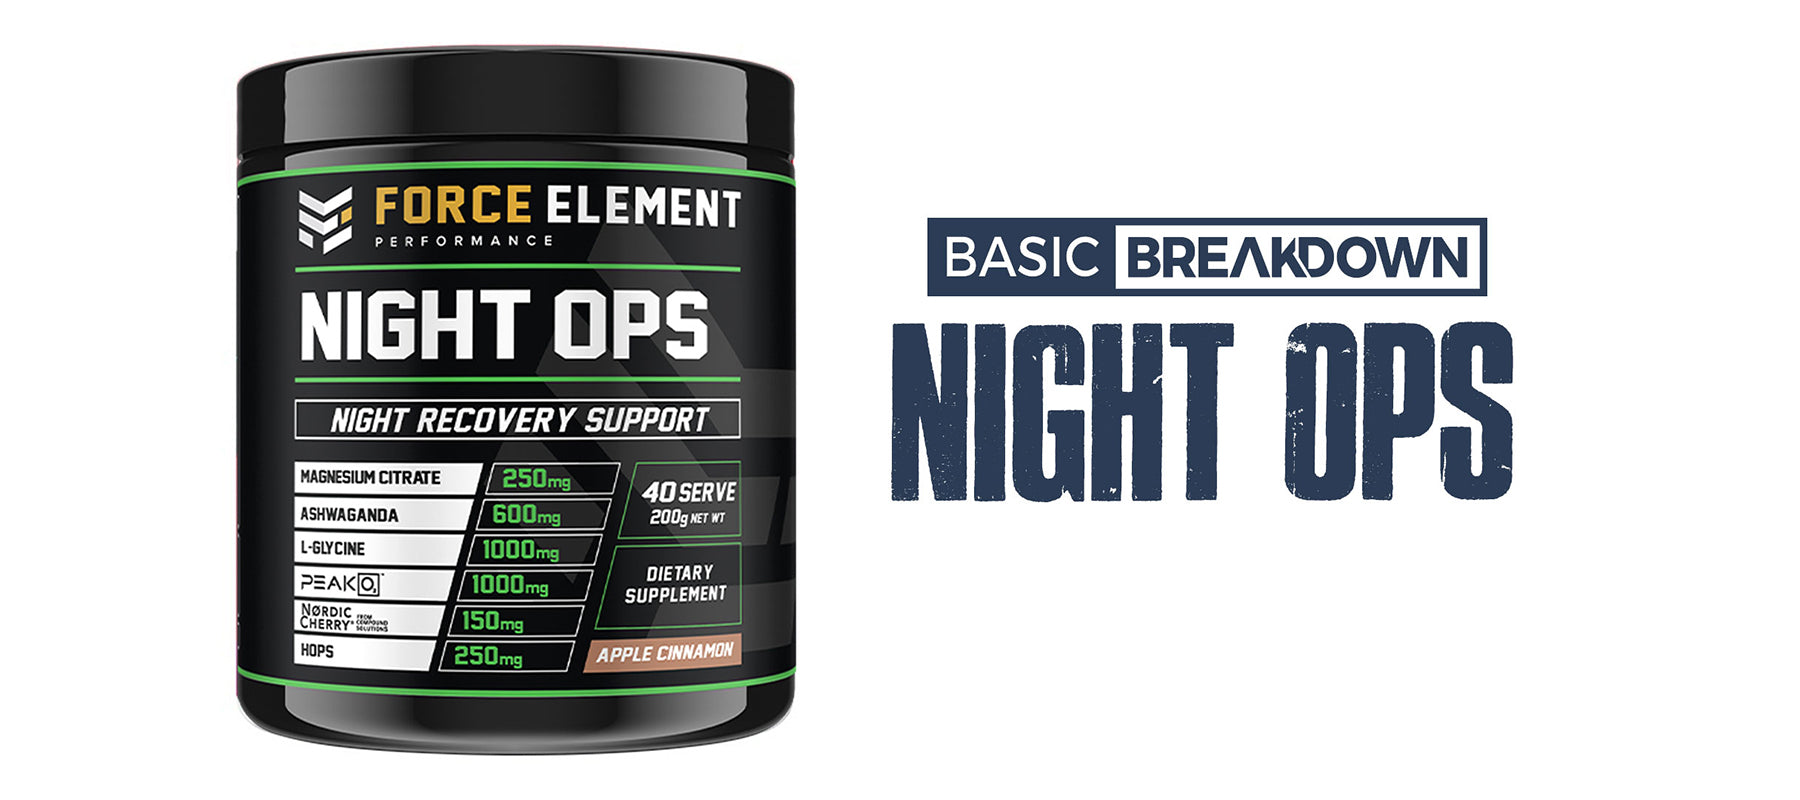 Force Element Night Ops Sleep Supplement Review | Basic Breakdown